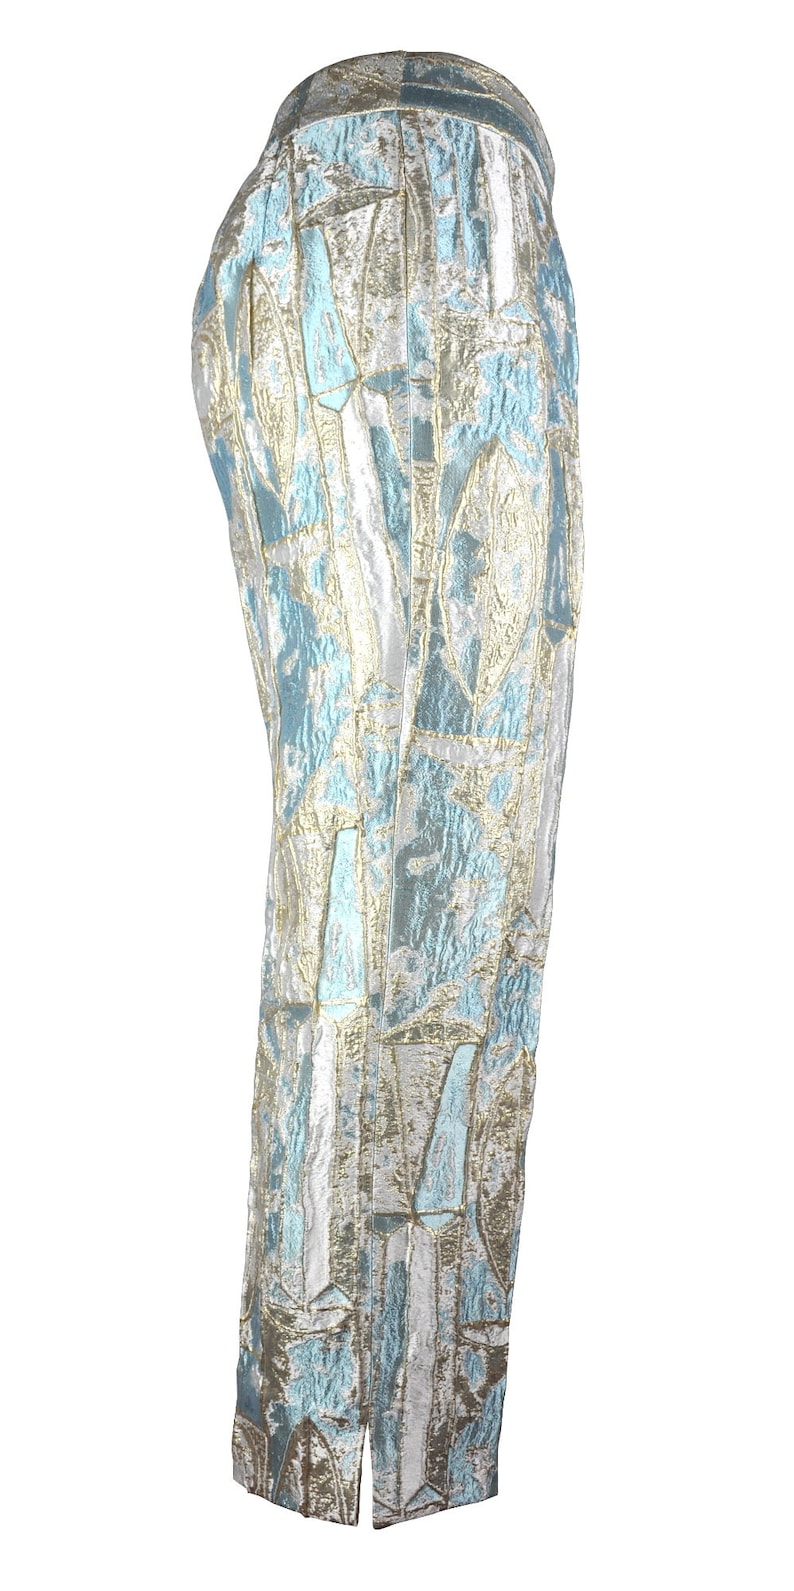 Low Waist Azure Women Pants made of Luxury Brocade Fabric Azure over White and Gold with Silver Reflections